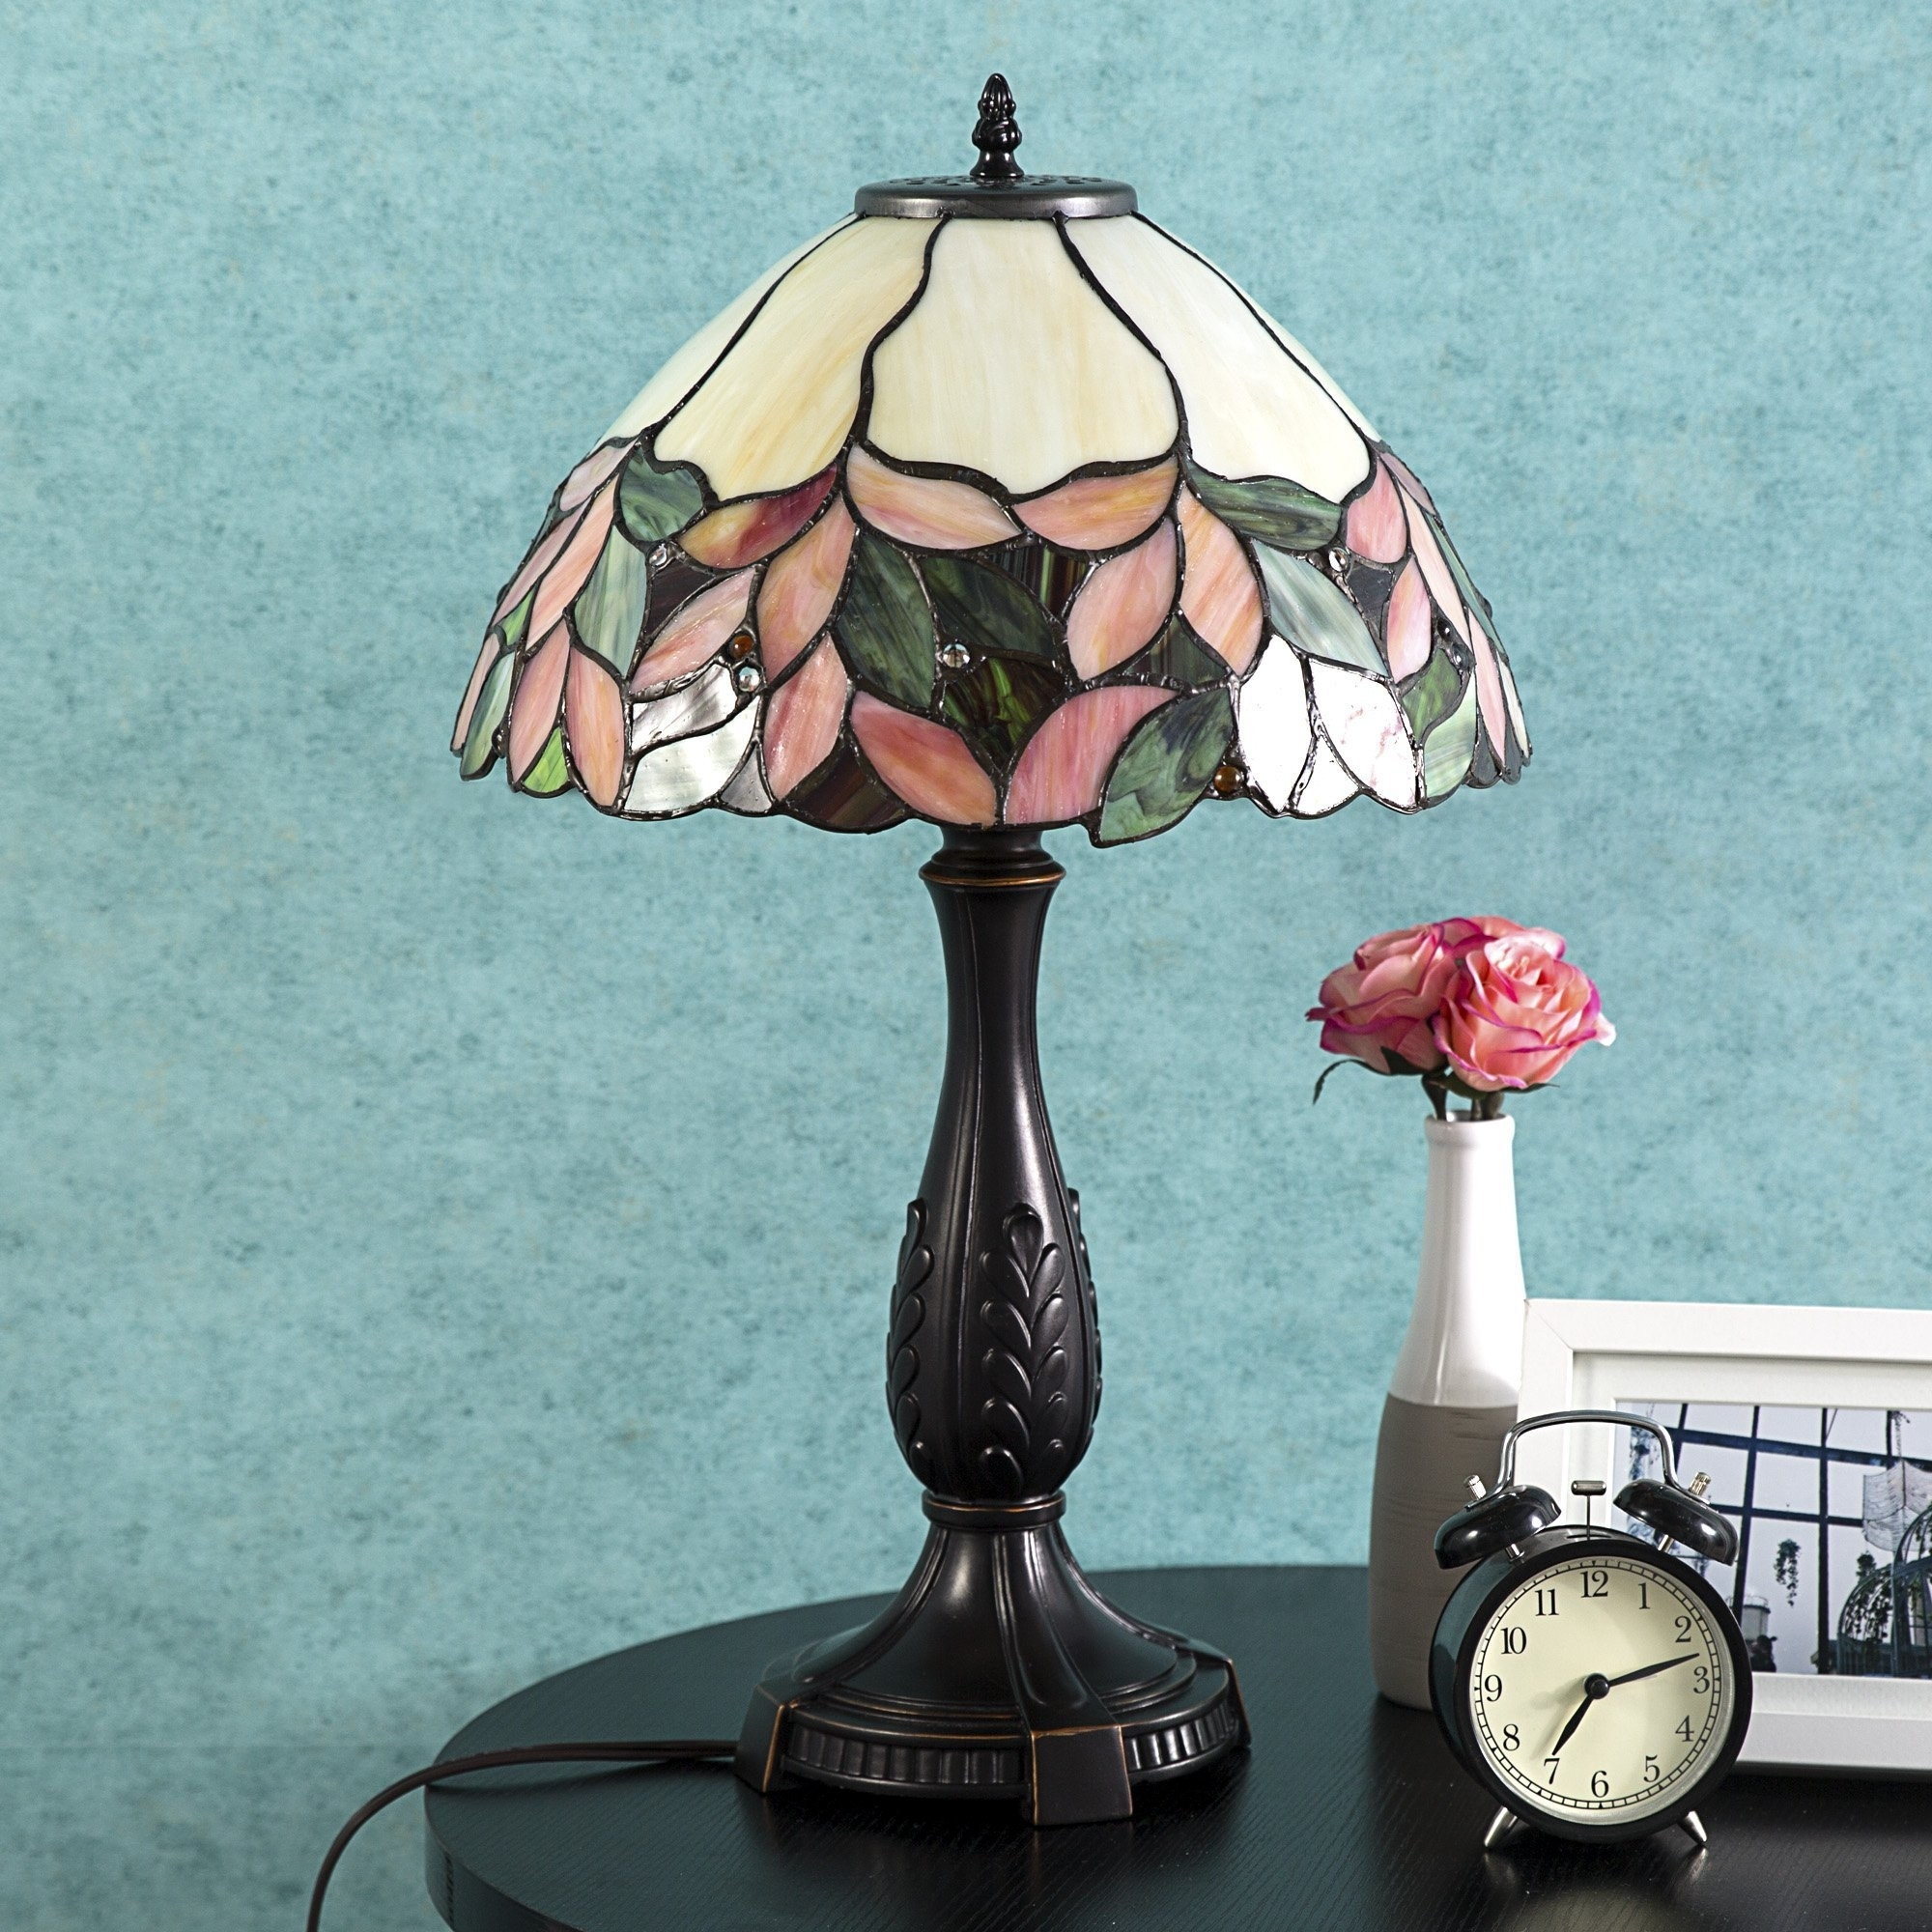 Tiffany Style Table Lamp Victorian Stained Glass Desk Lamp Floral Home Decor